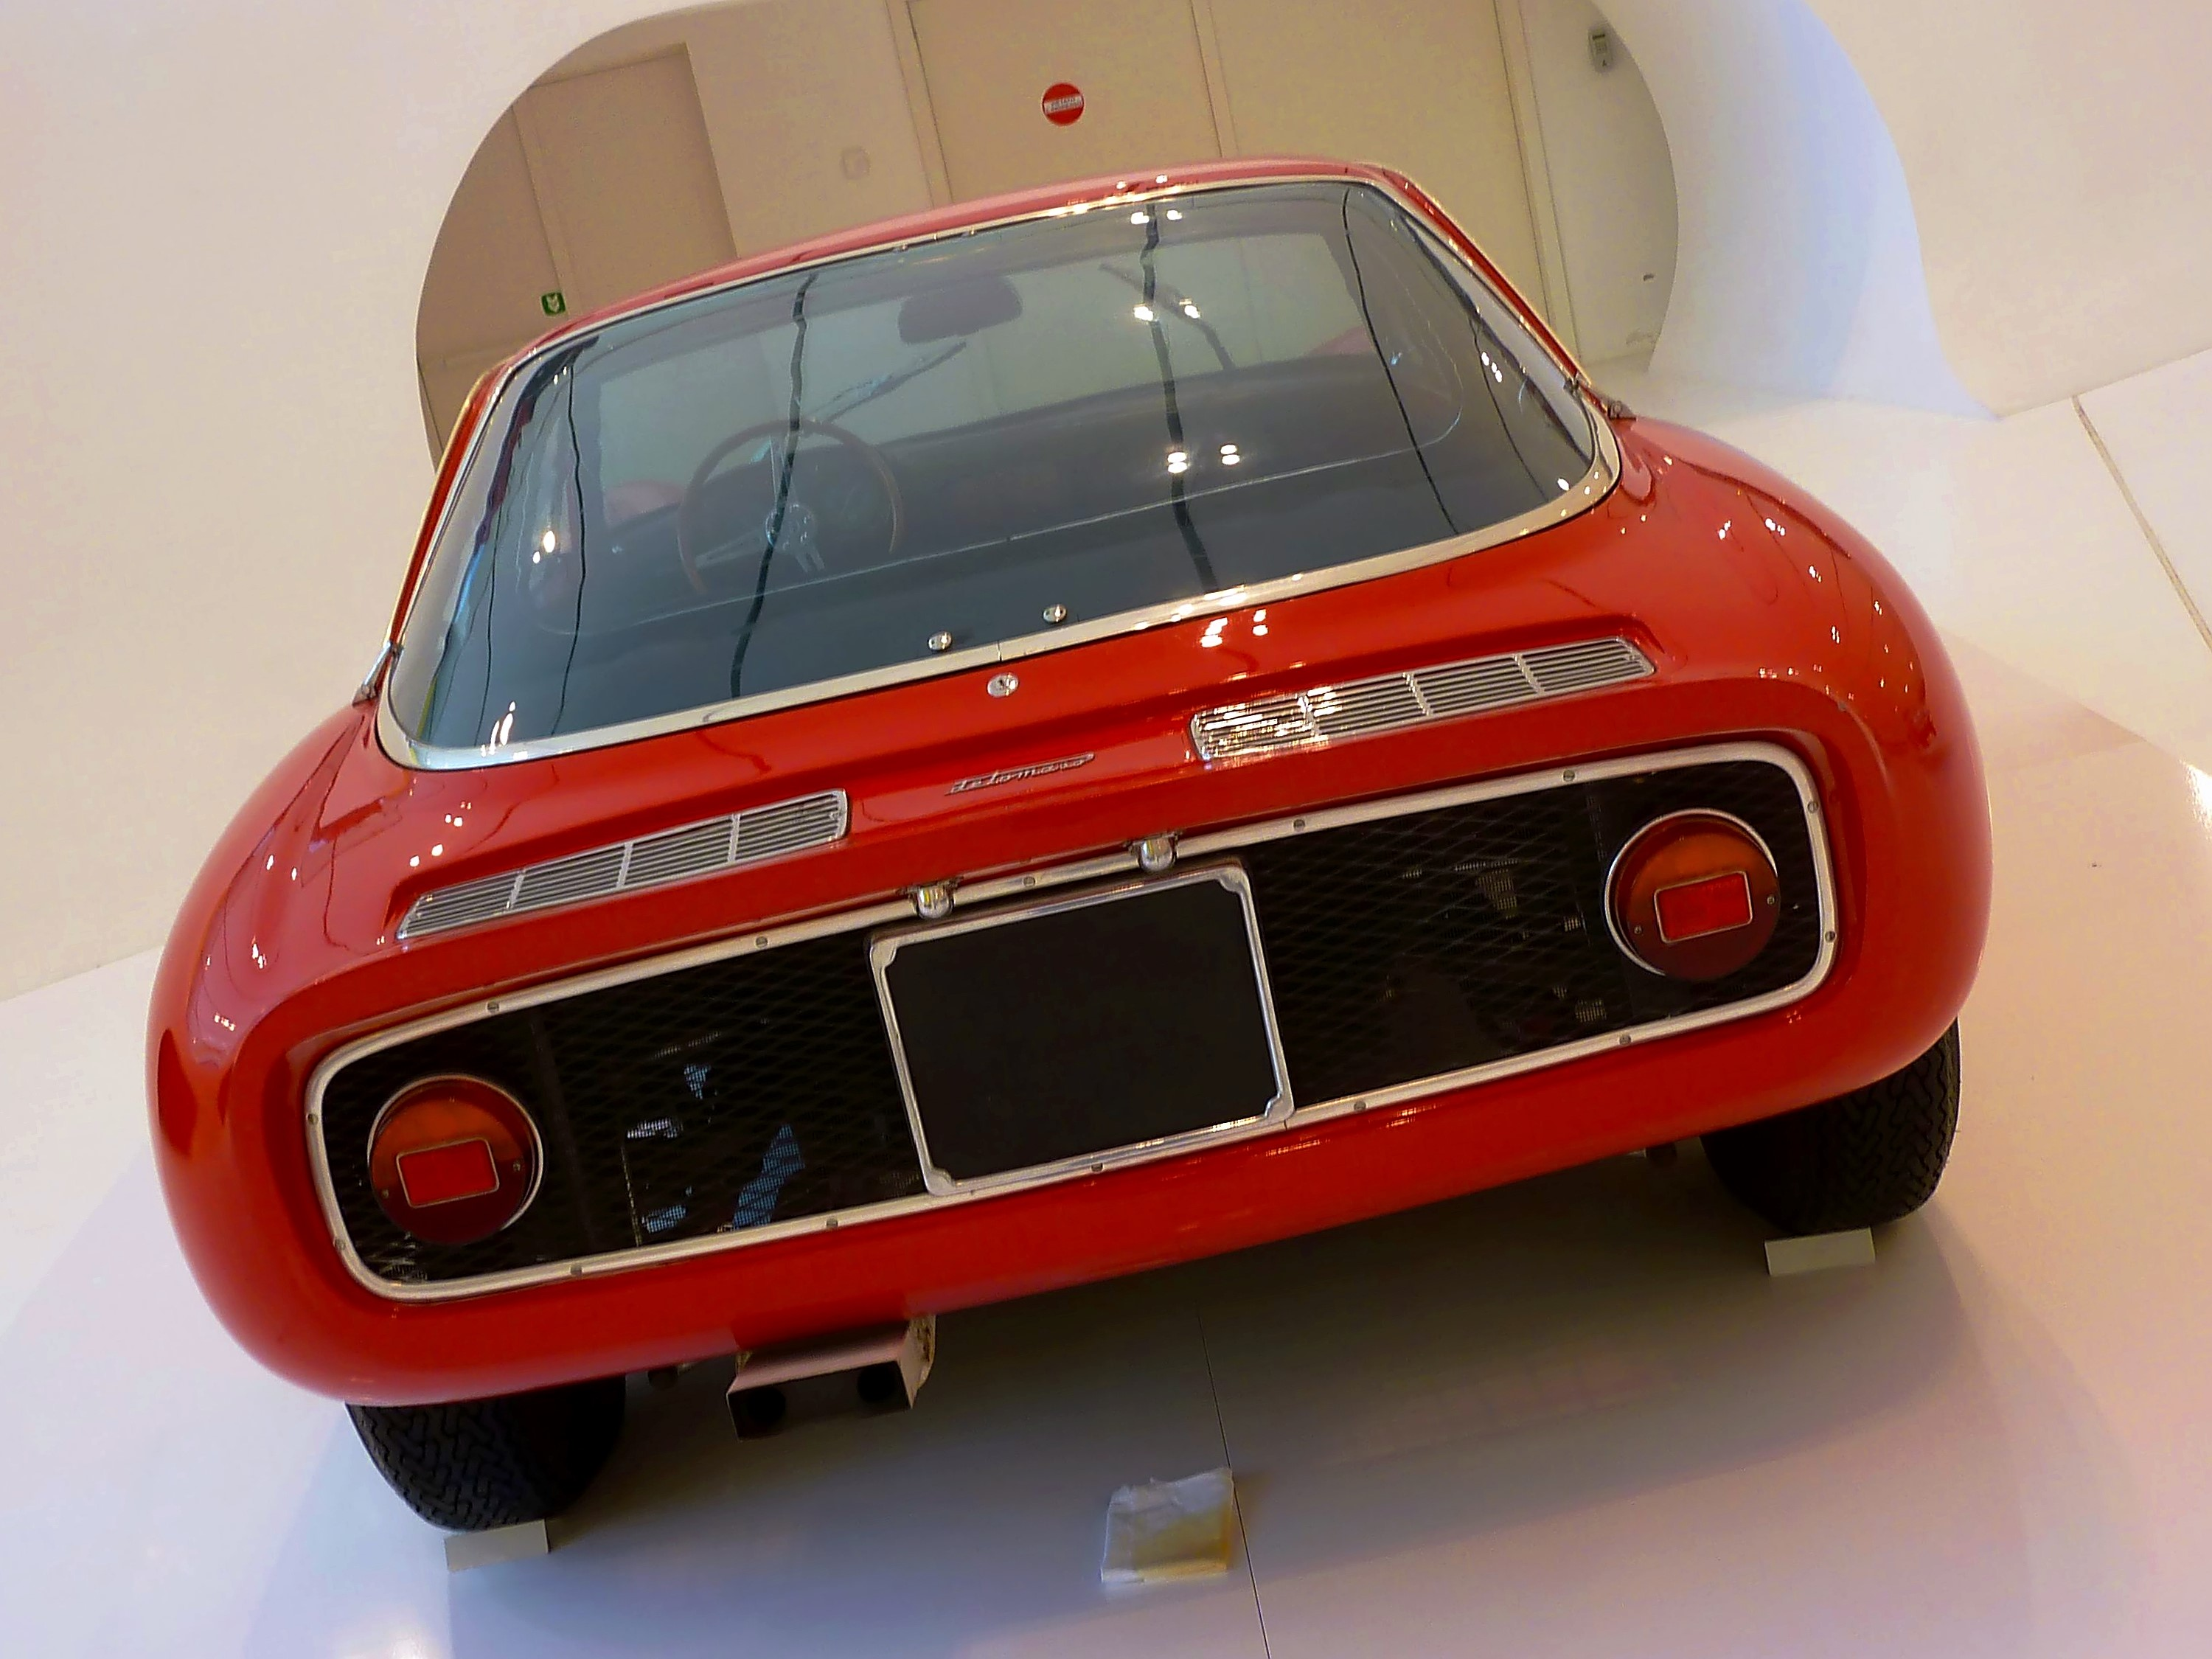 1965 De Tomaso Vallelunga (7)_filtered